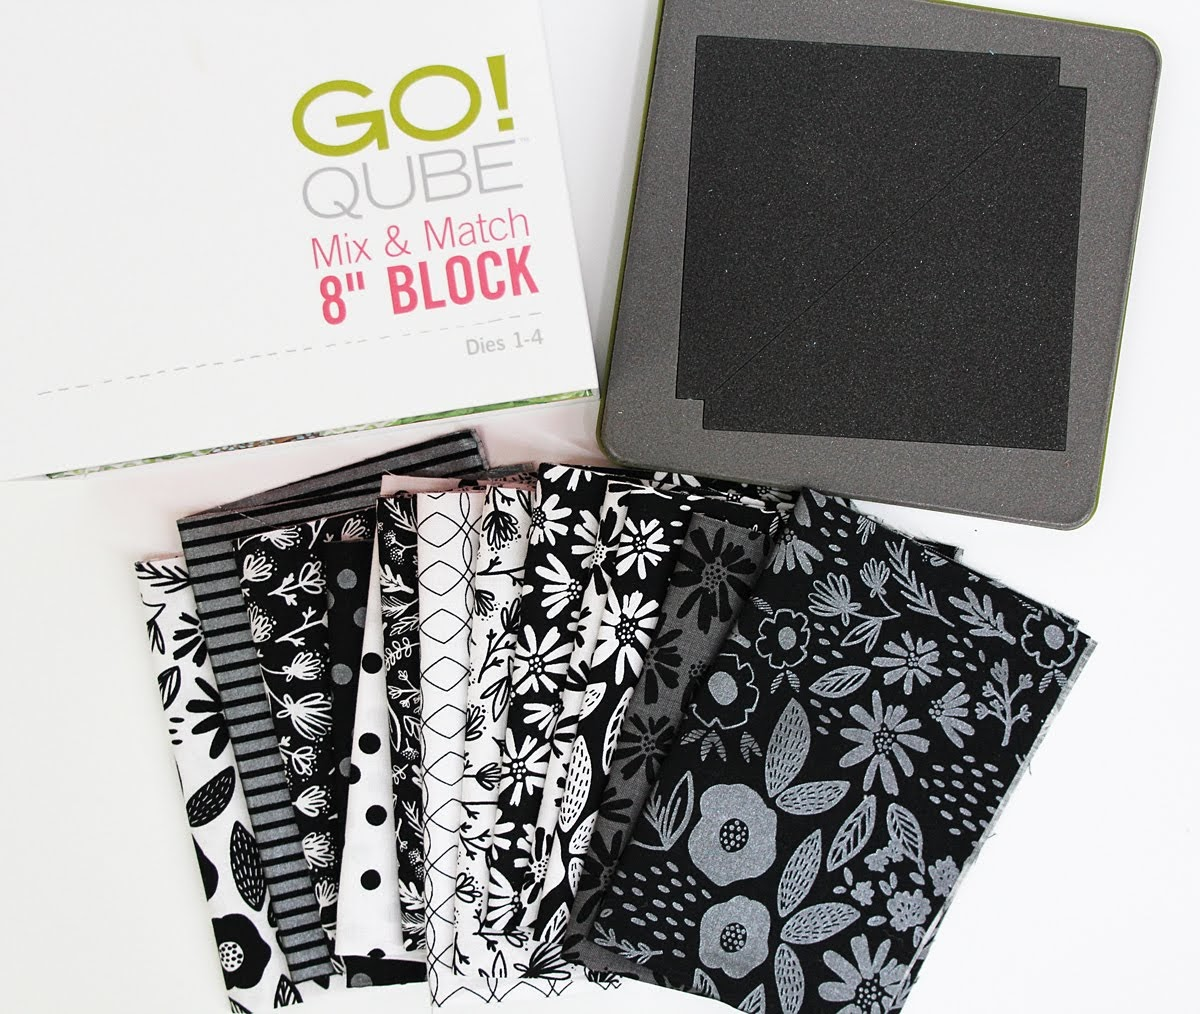 go qube mix and match 8 inch block fabric dies